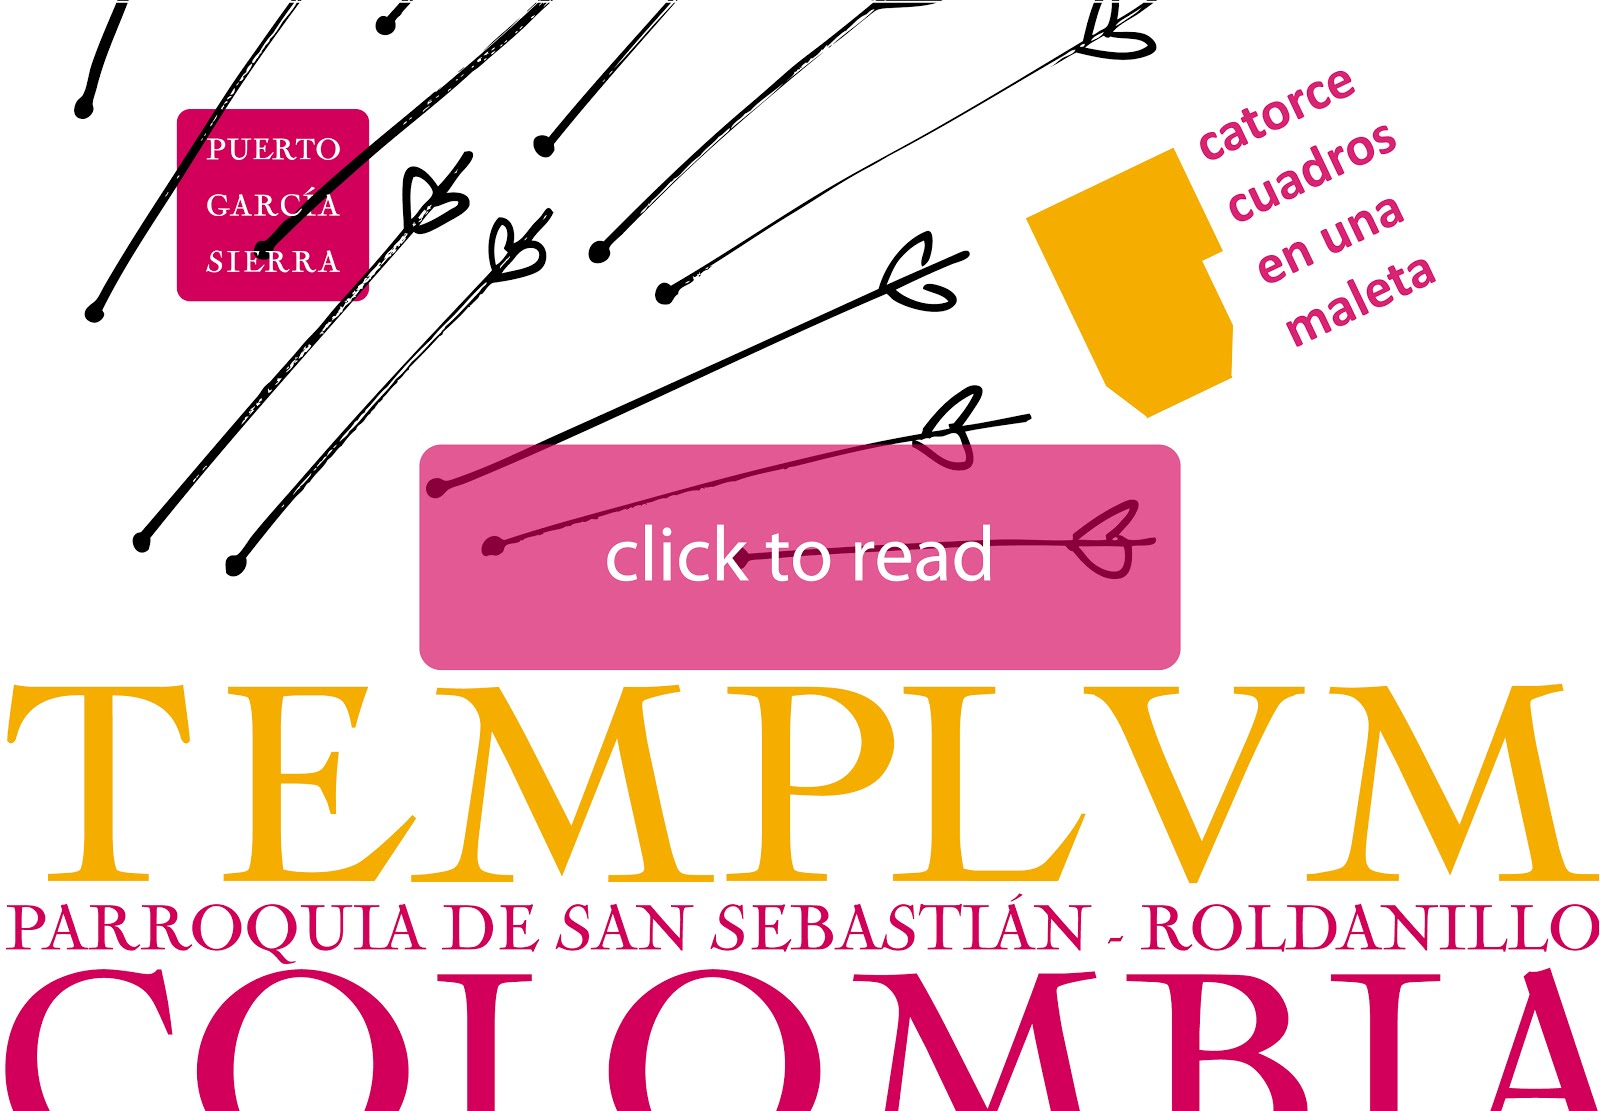 Revista Templvm Roldanillo Colombia